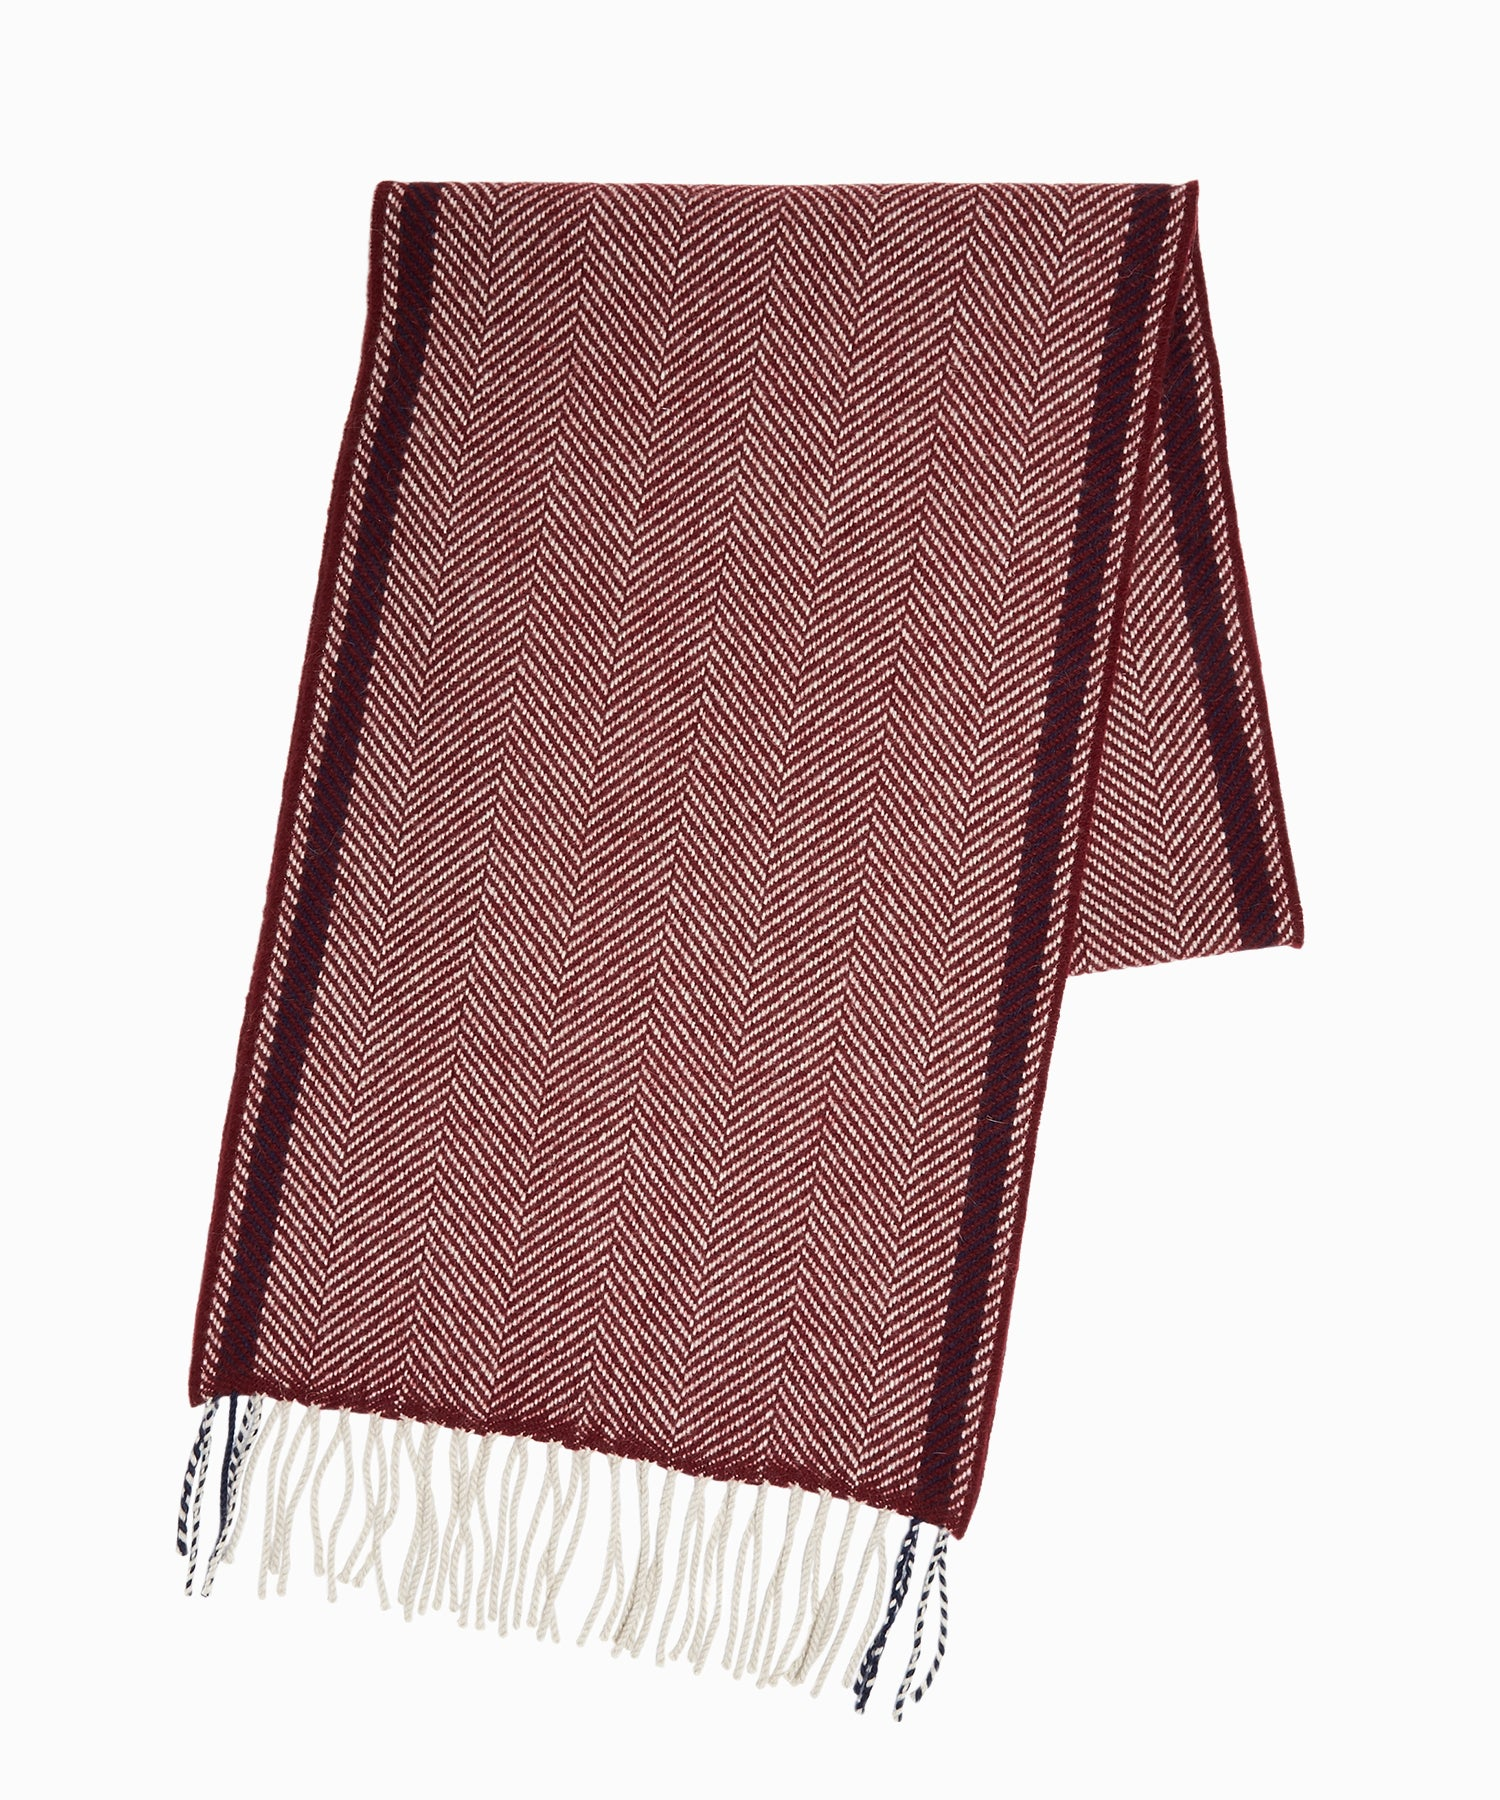 Drake's Lambswool Herringbone Scarf in Wine